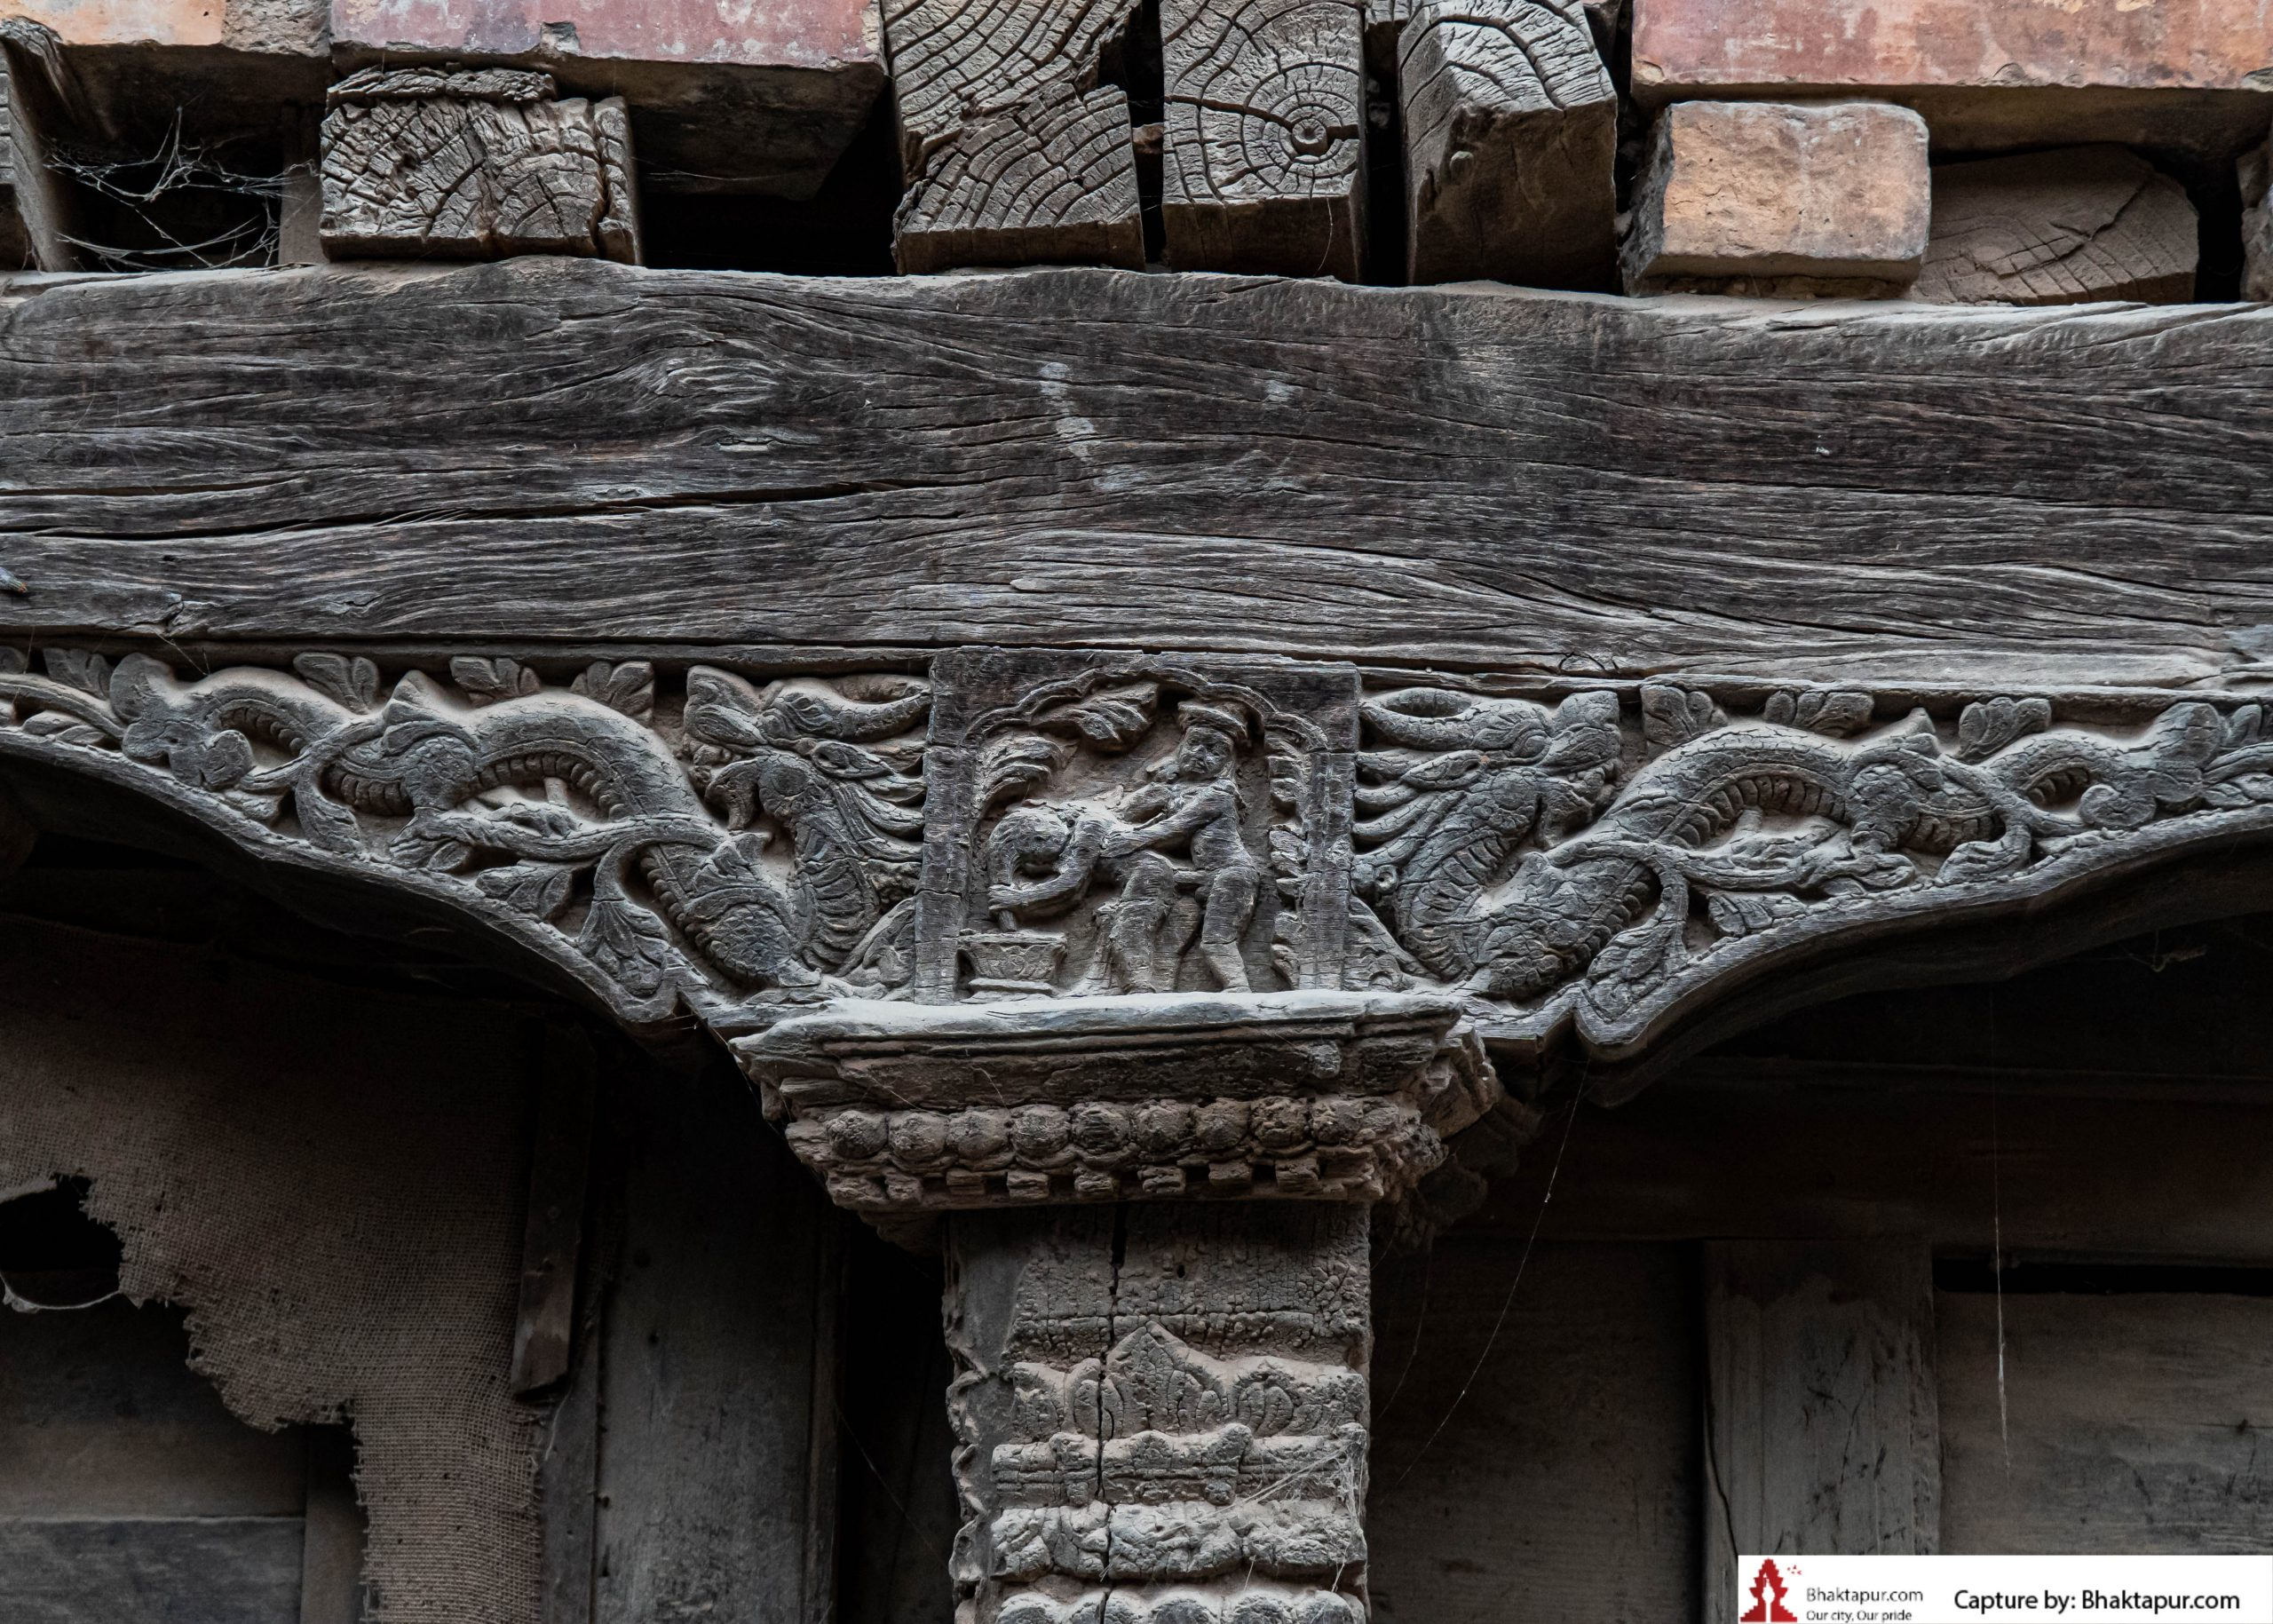 https://www.bhaktapur.com/wp-content/uploads/2021/08/erotic-carving-121-of-137-scaled.jpg